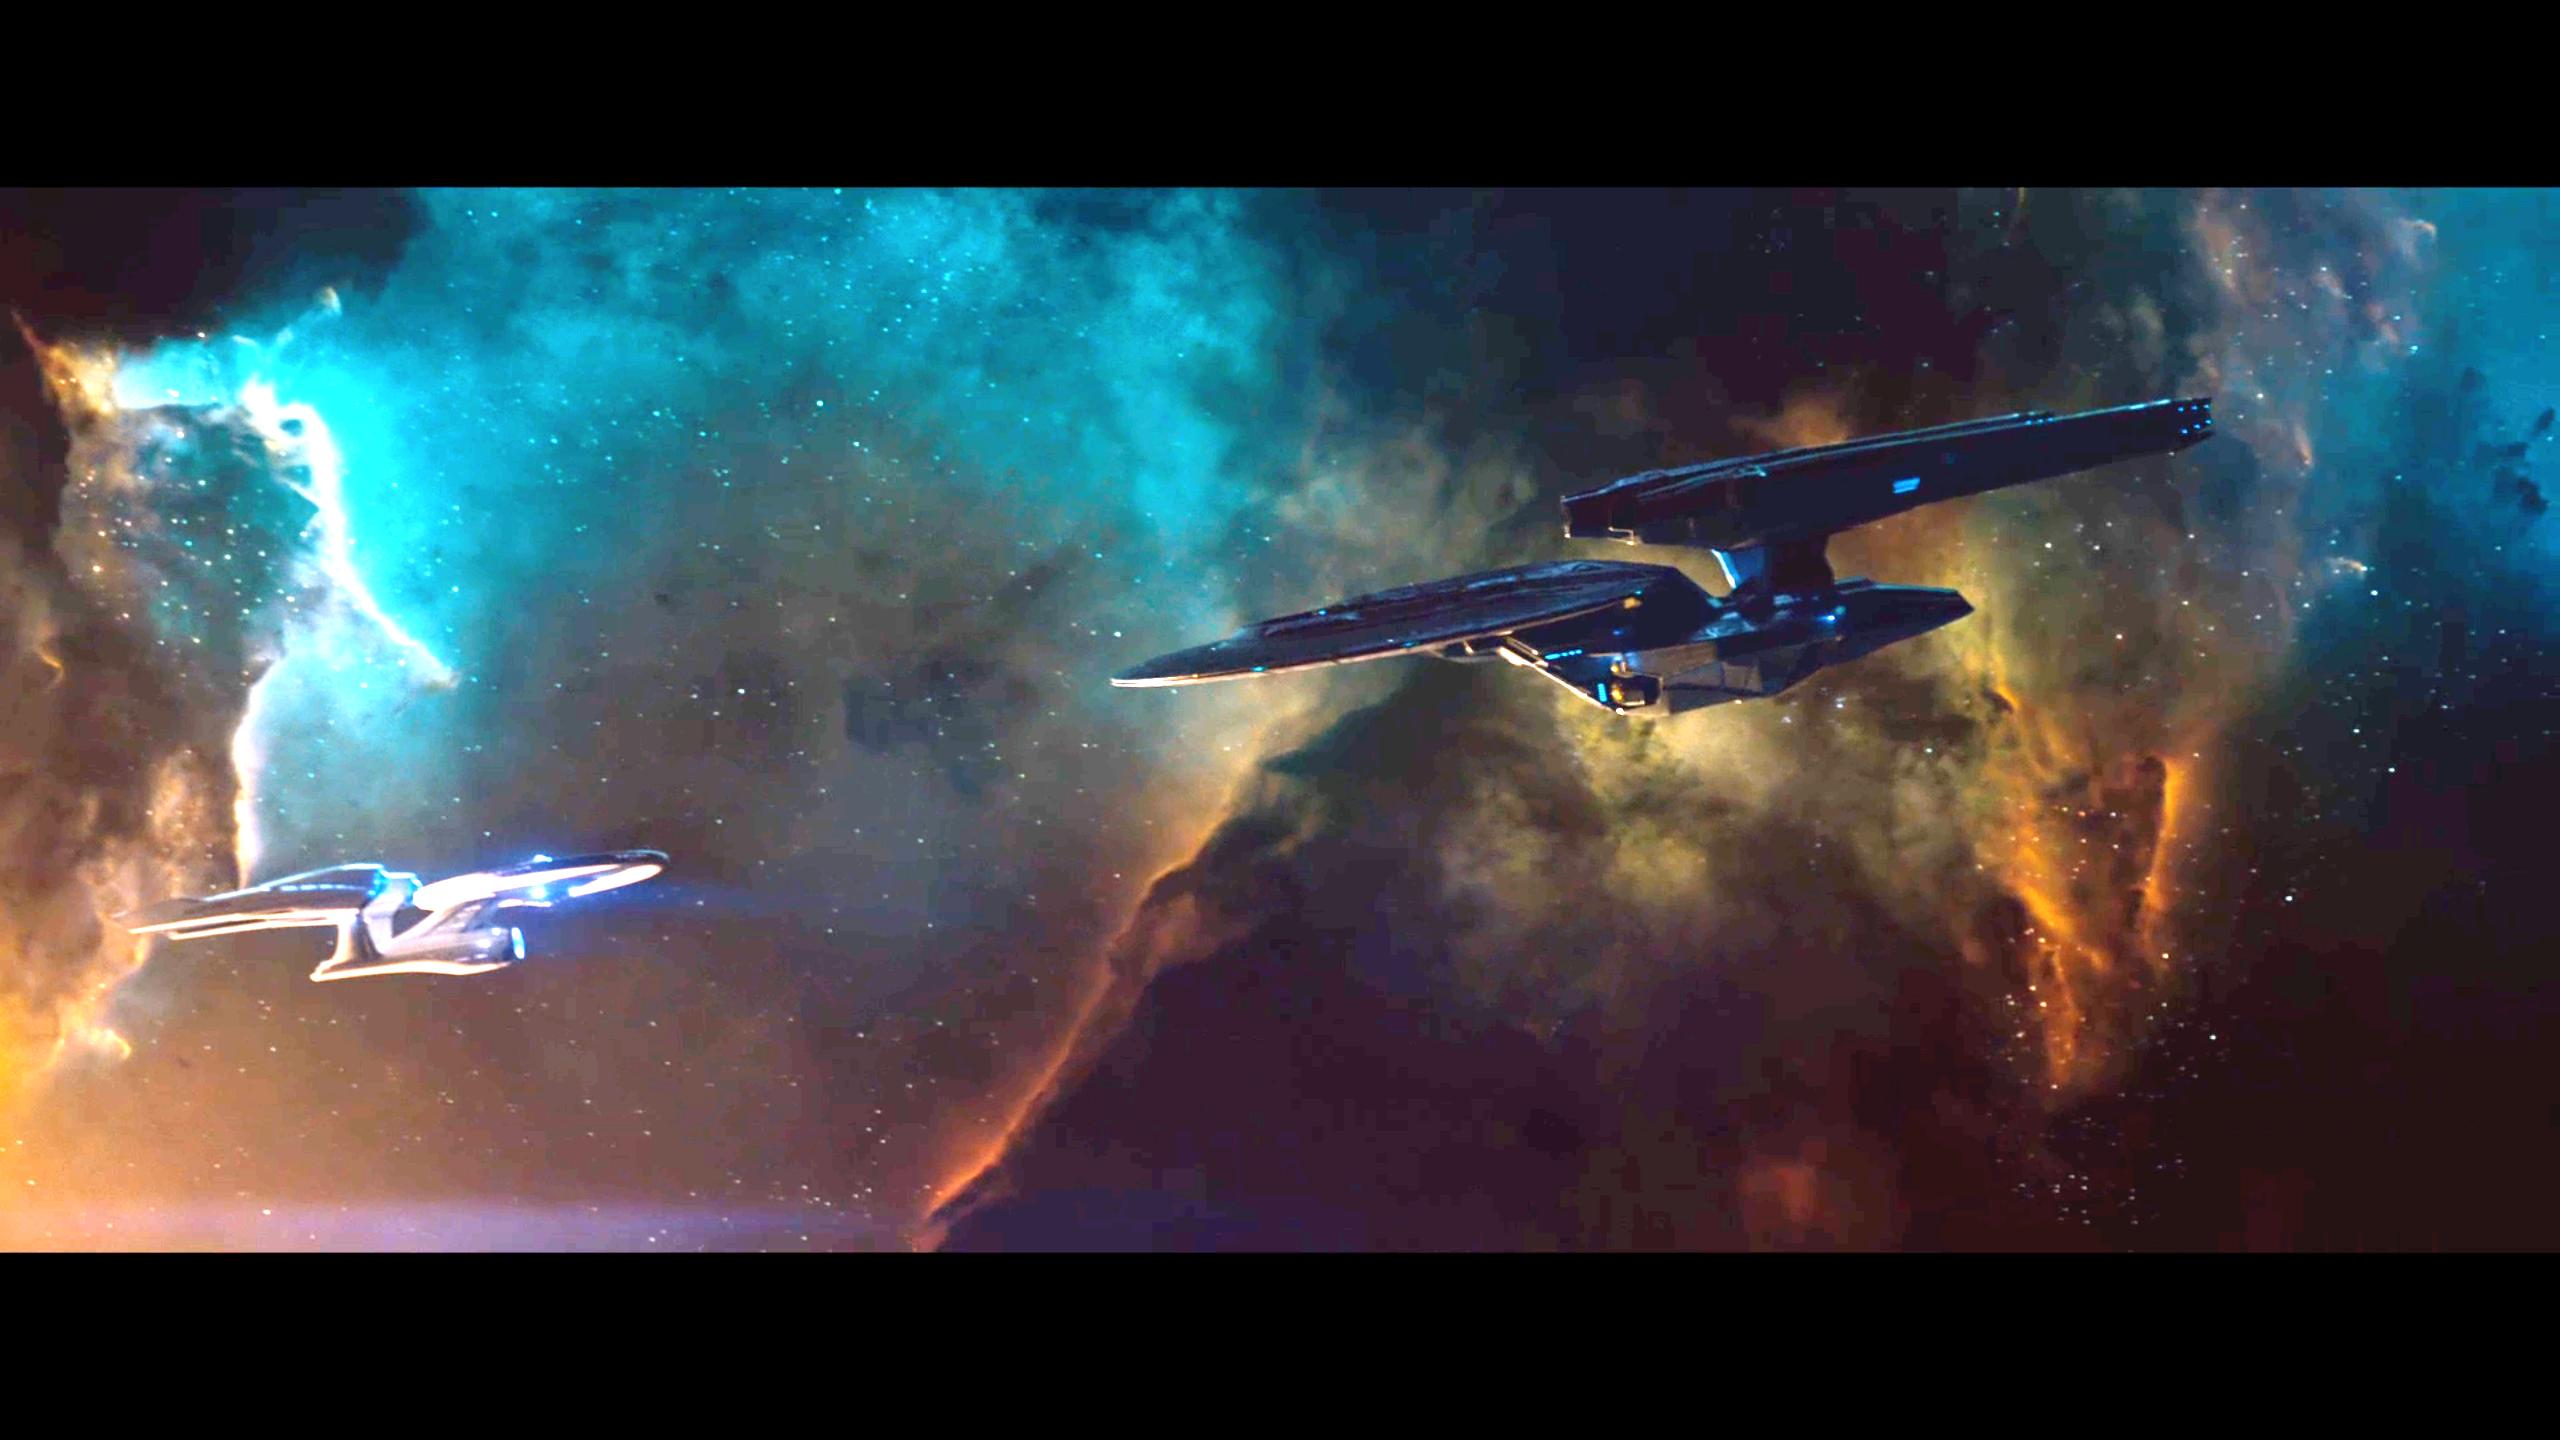 Star Trek 171 Awesome Wallpapers 2560x1440